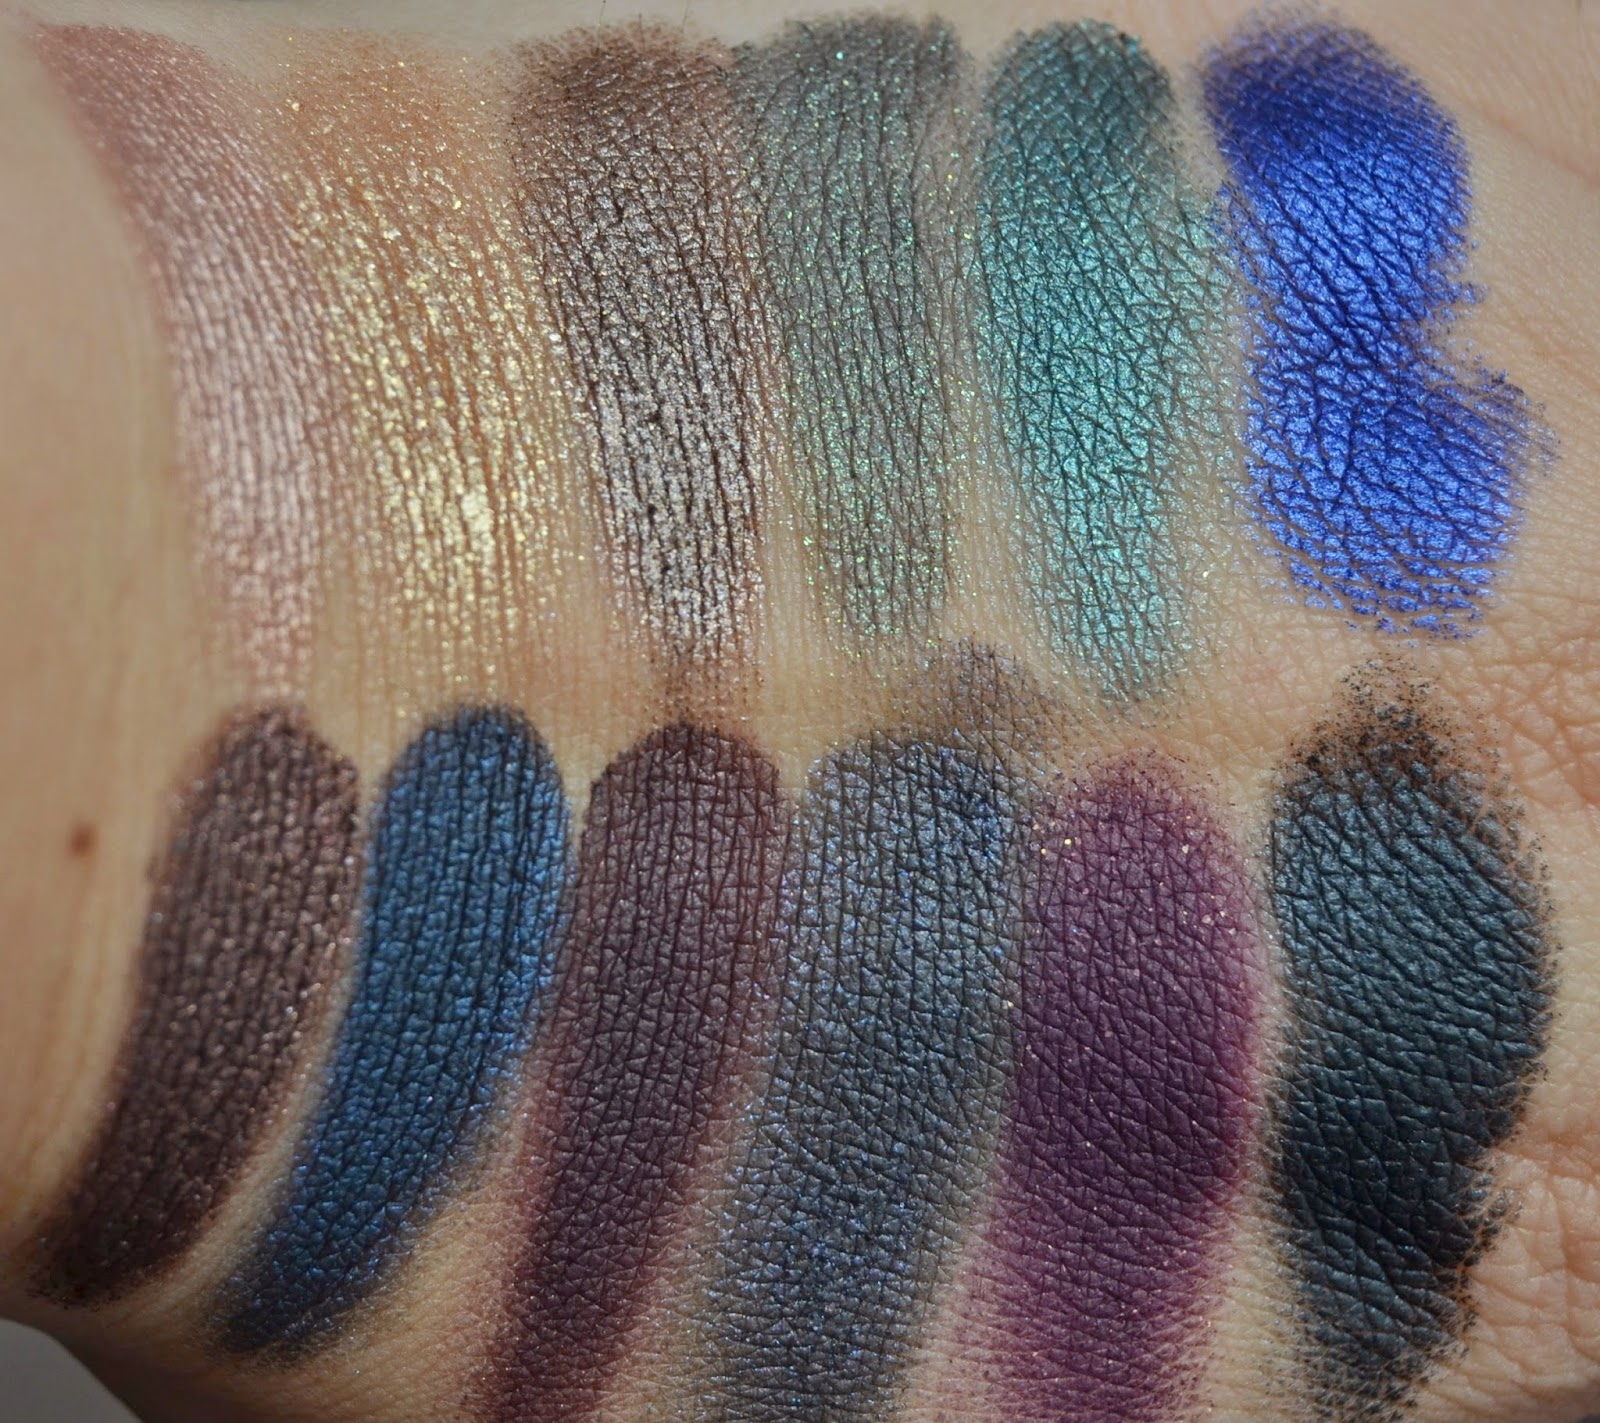 Sleek MakeUp i-DIvine Arabian Nights Palette - Laurau0026#39;s Corner